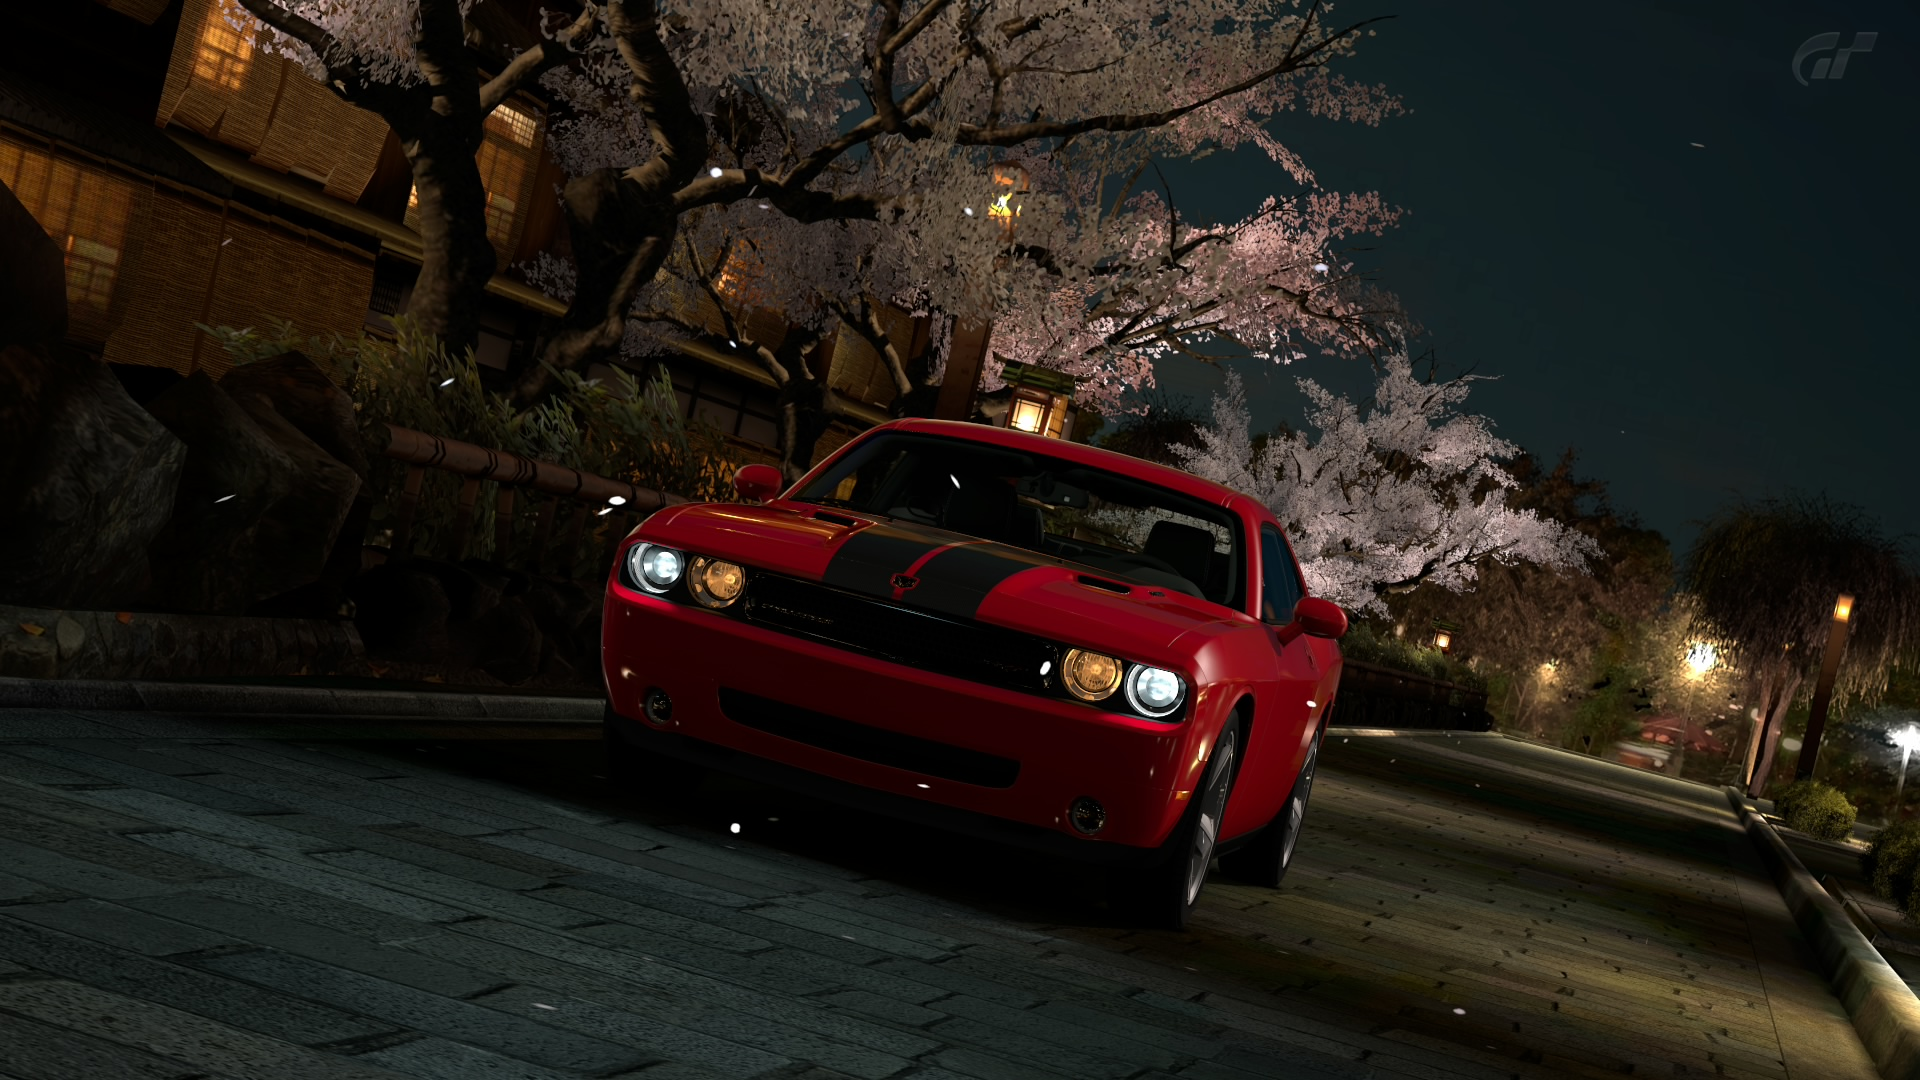 Dodge Challenger Srt8 2013 Wallpaper Dodge Challenger Srt8 in